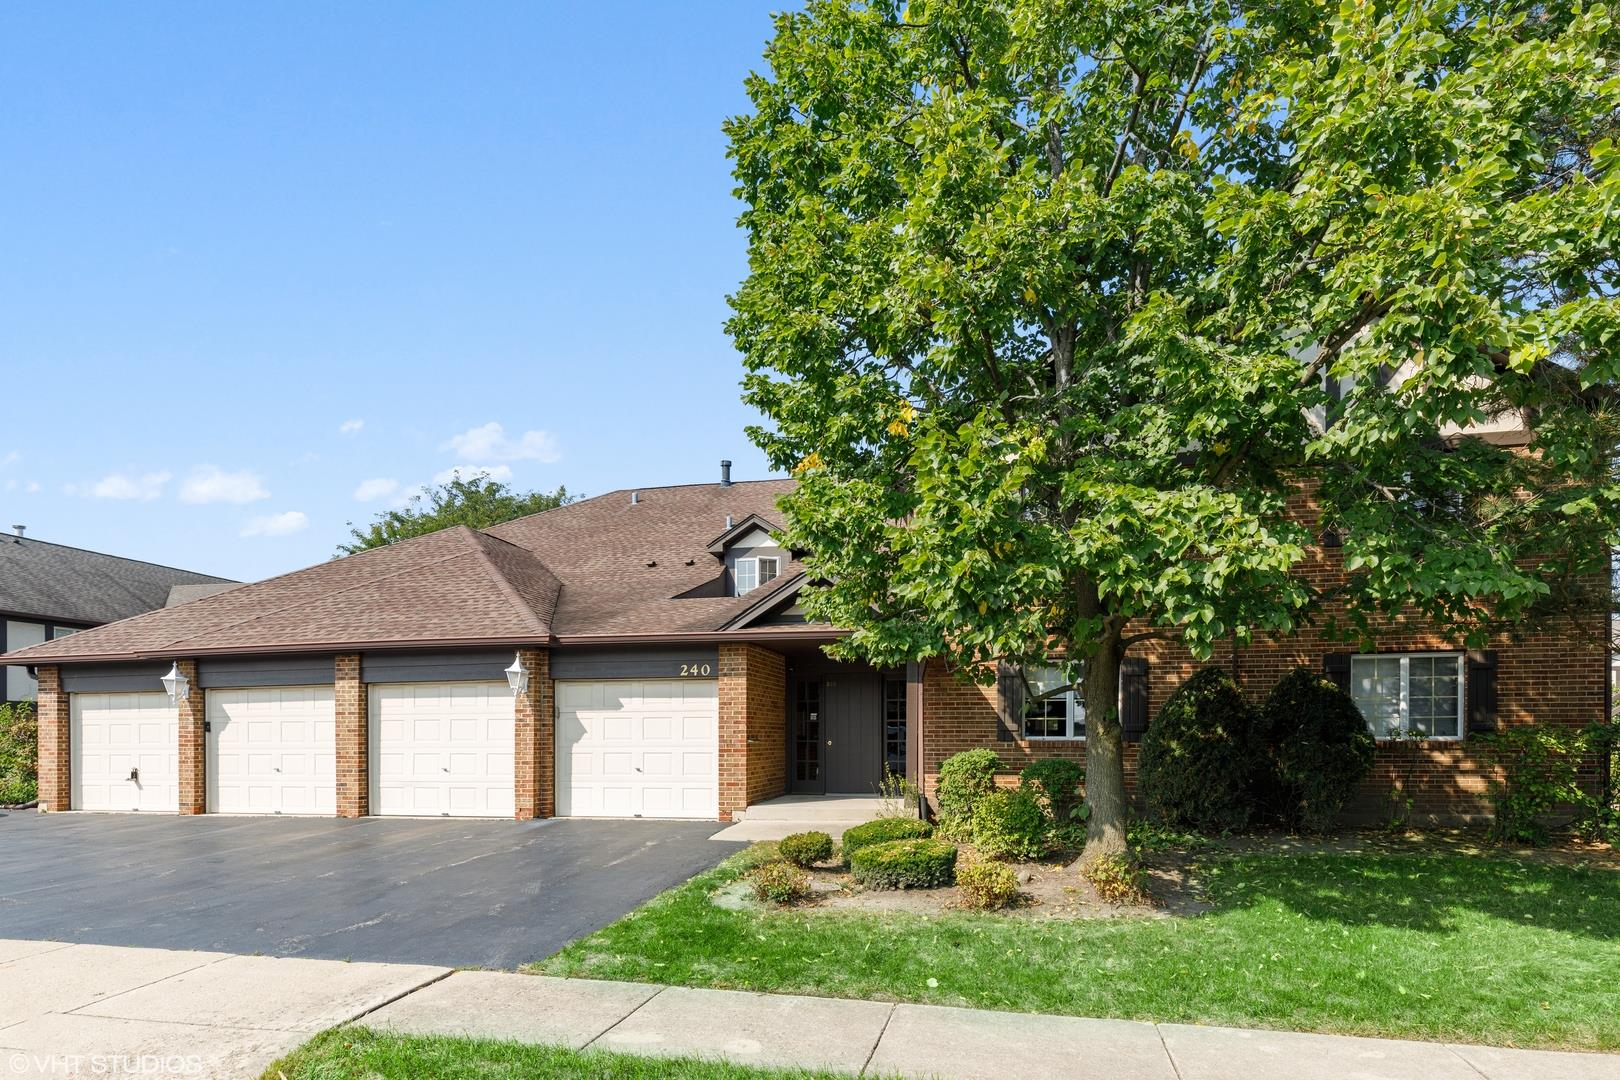 240 Windsor Lane #D, Willowbrook, IL 60527 - #: 10880661